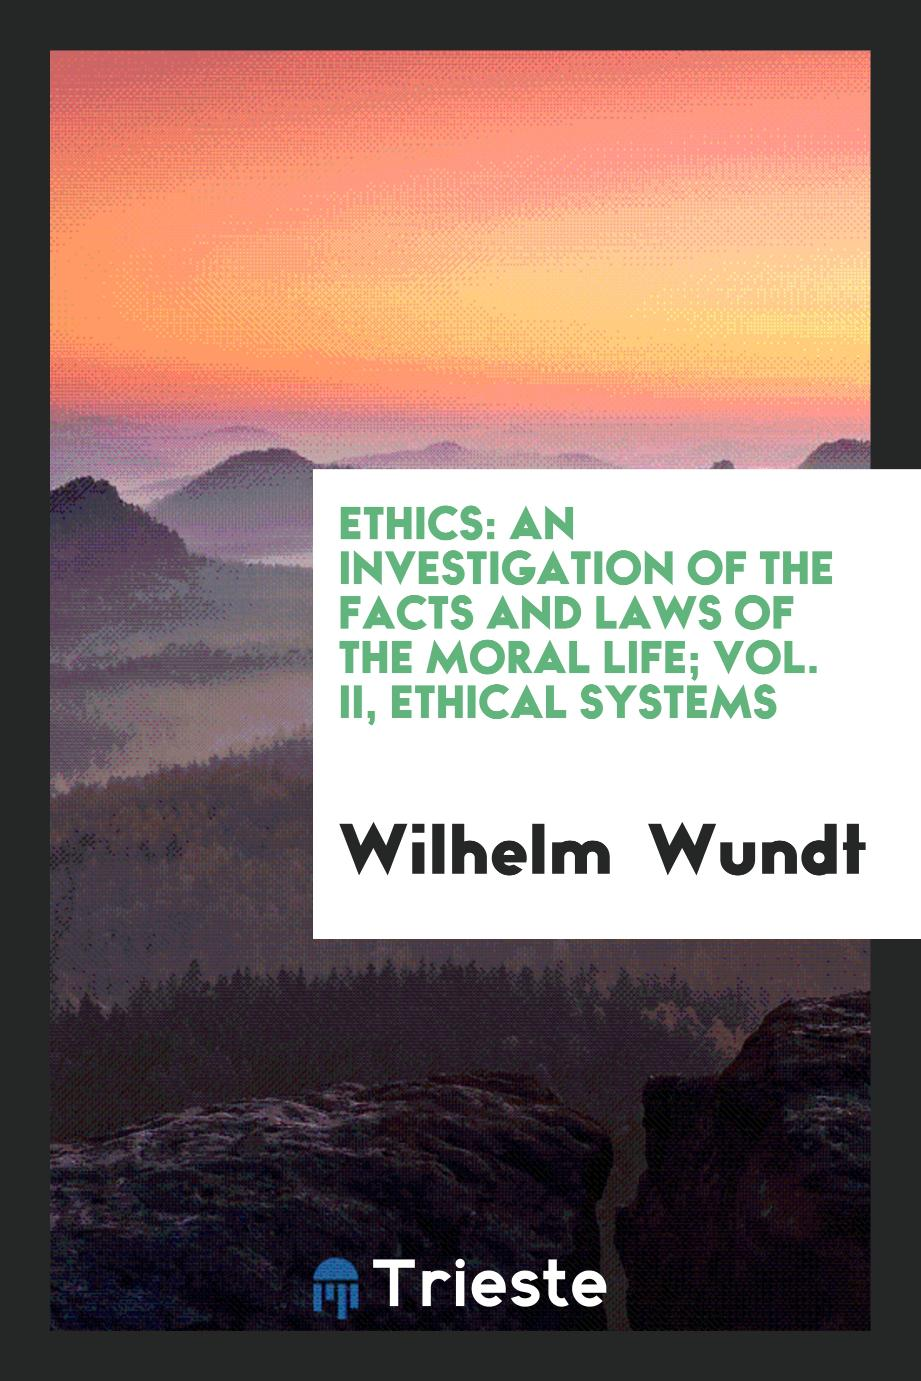 Ethics: An Investigation of the Facts and Laws of the Moral Life; Vol. II, Ethical Systems